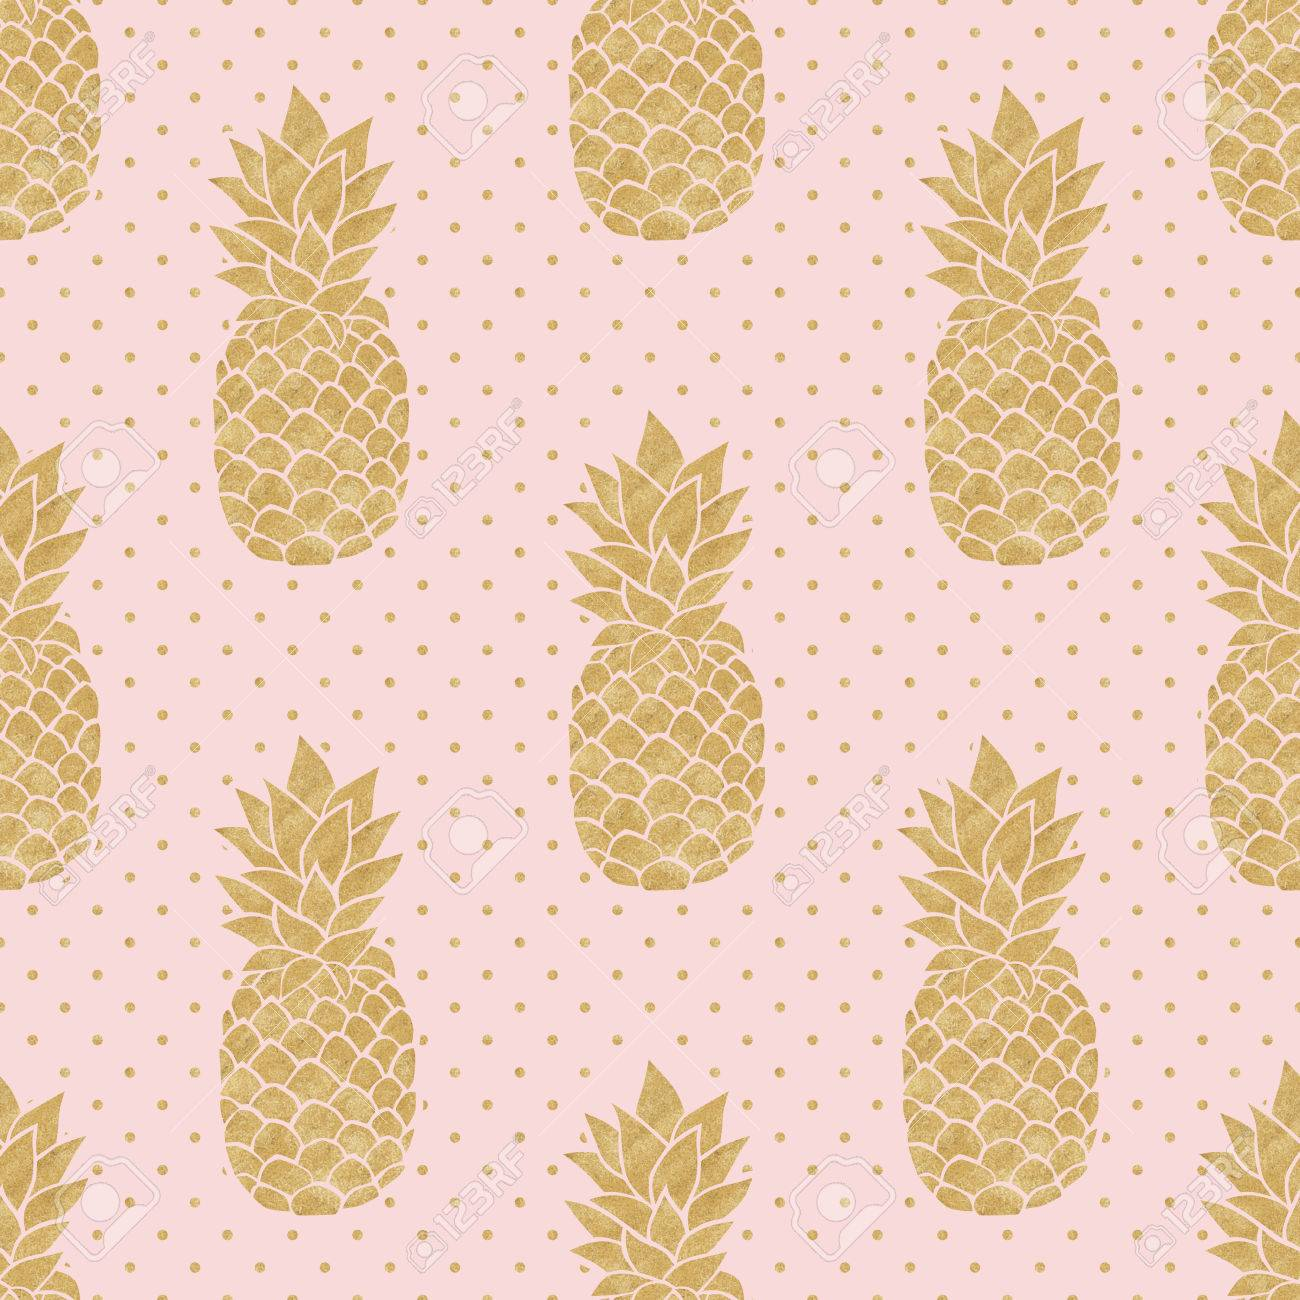 Seamless Pattern With Gold Pineapples On Polka Dot Background